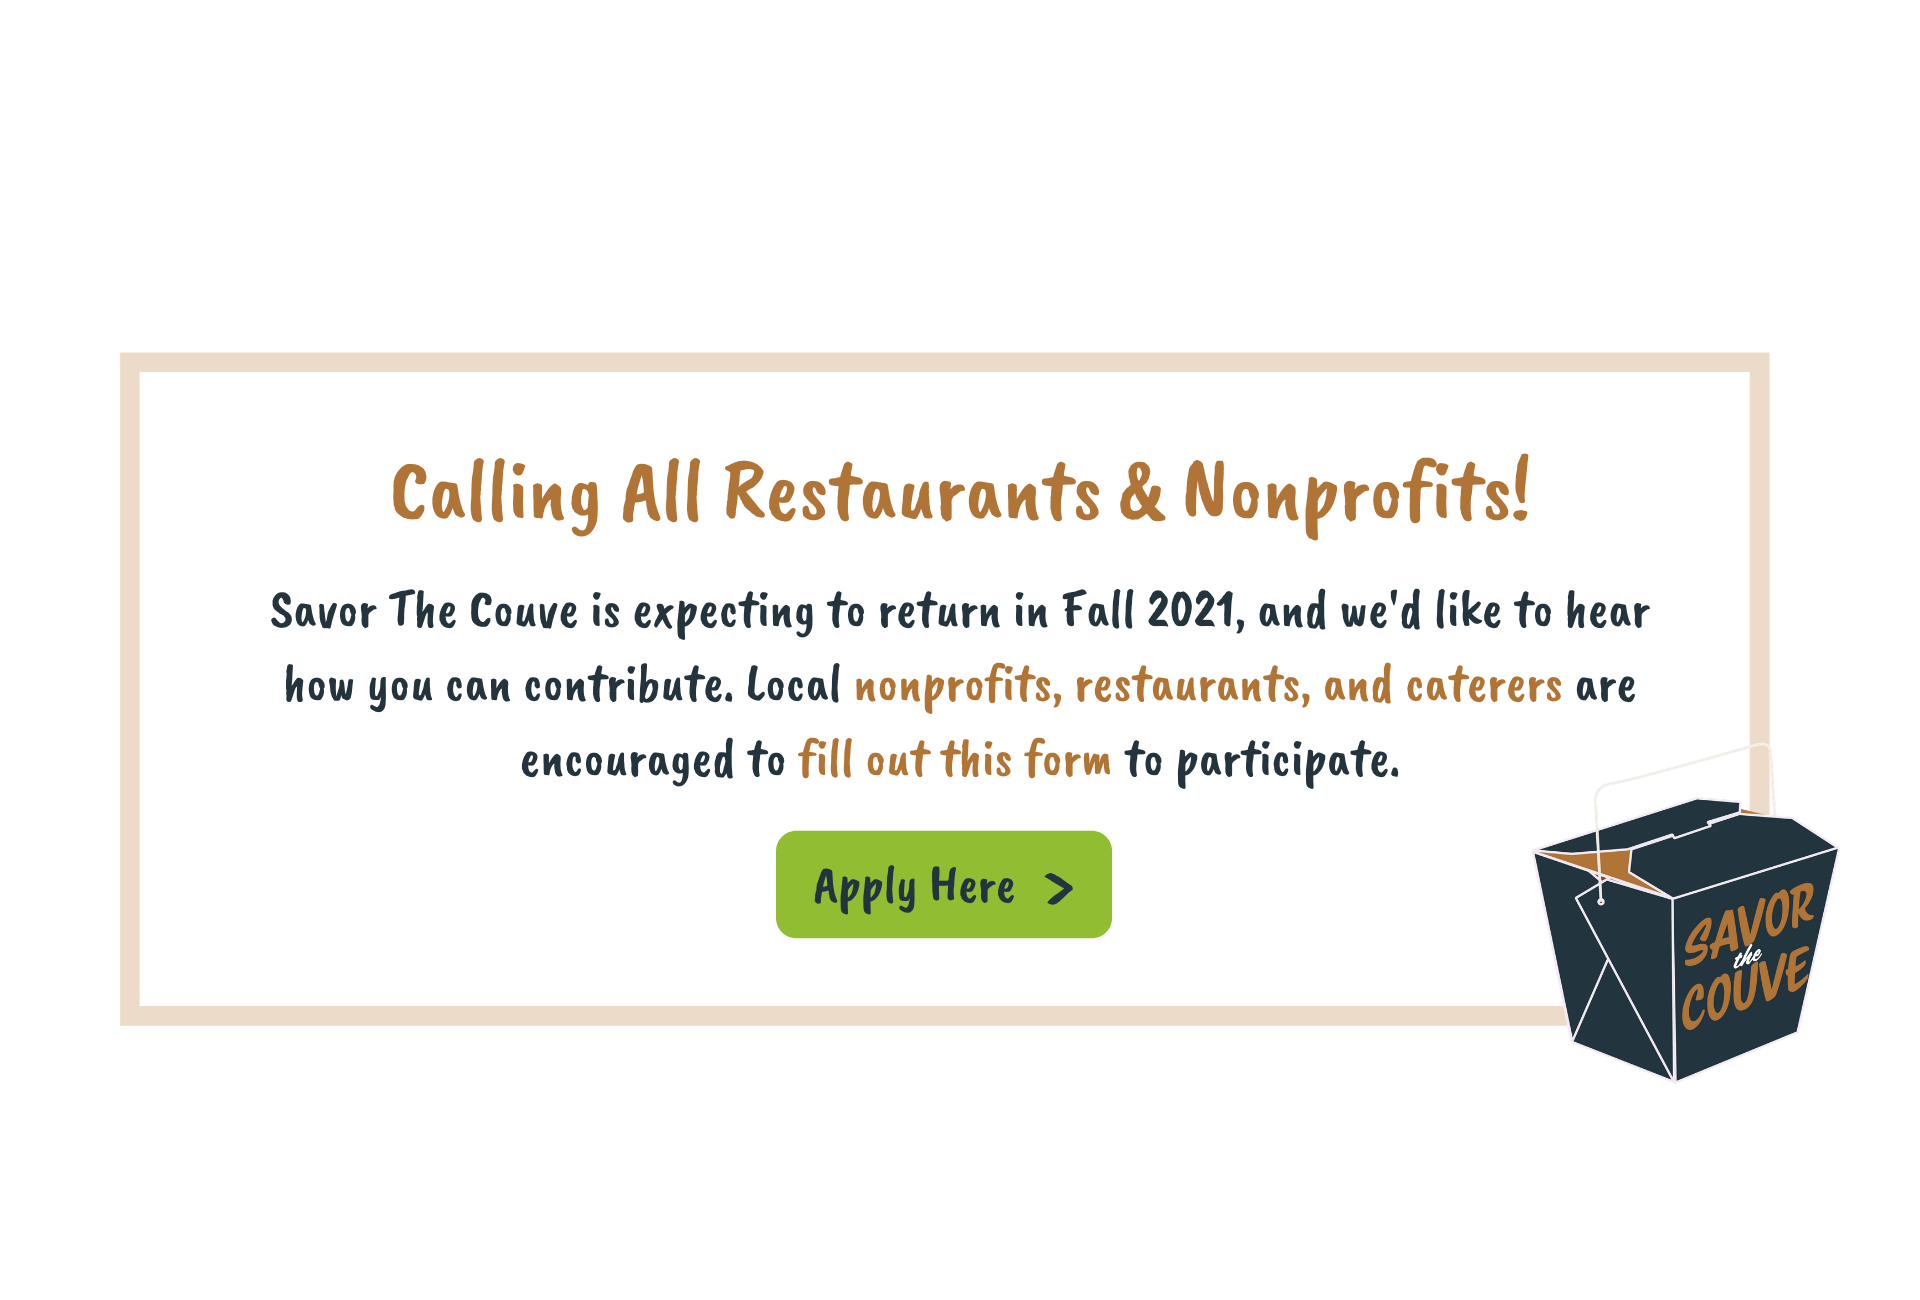 calling all restaurants and nonprofits & savor the couve is expecting to return in fall 2021 and we'd like to hear how you can contribute. local nonprofits, restaurants, and caterers are encouraged to fill out this form to participate apply here arrow CTA button takeout event